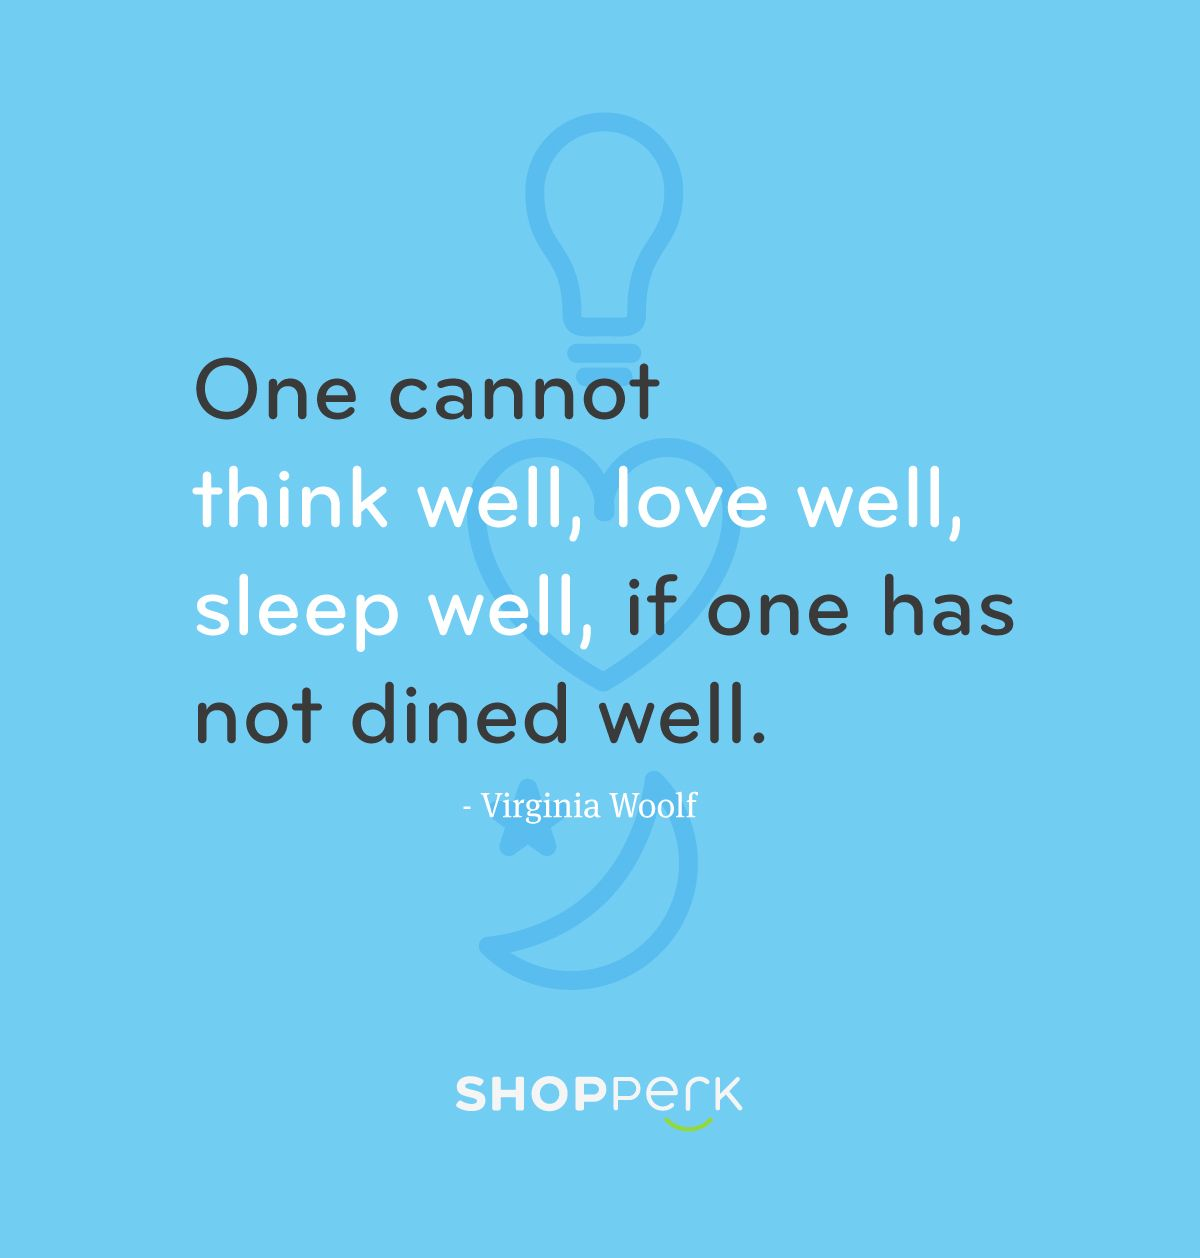 Food Quote From Virginia Woolf A Wise Woman Food Quotes Foodie Quotes Funny Quotes